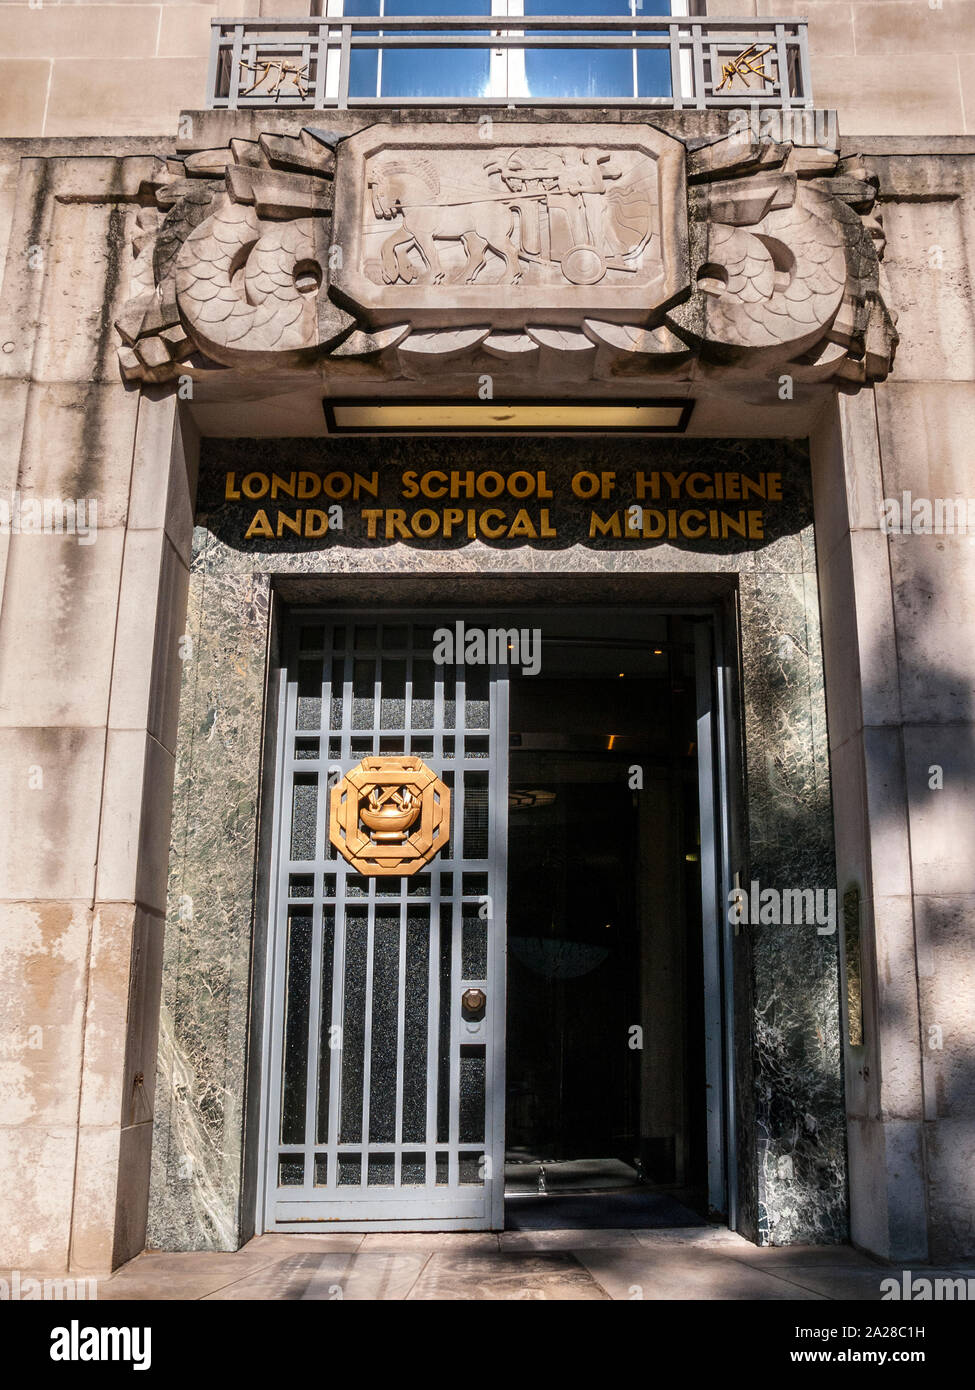 London School of Hygiene and Tropical Medicine Stock Photo